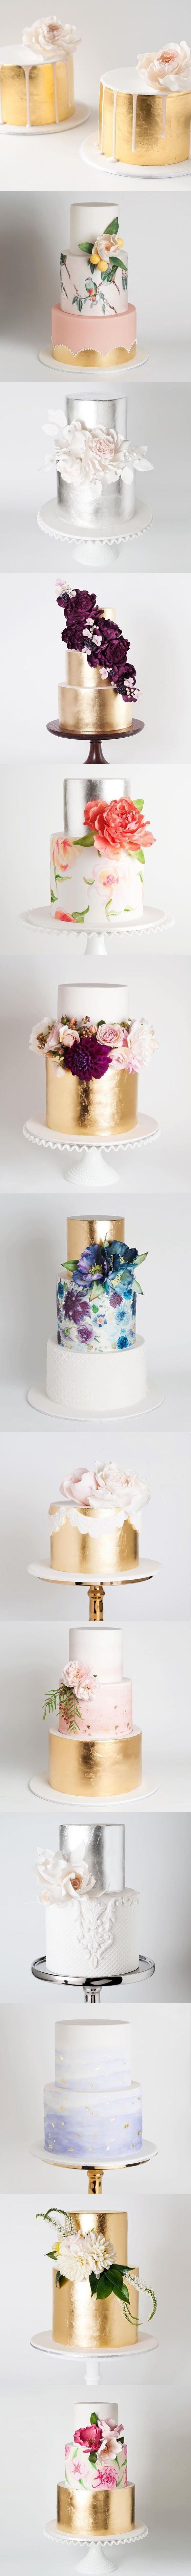 Tartas y pasteles de boda en color oro, y flores, diseños 2016. metallic cakes - my kind of wedding cakes! Bring on the gold :)